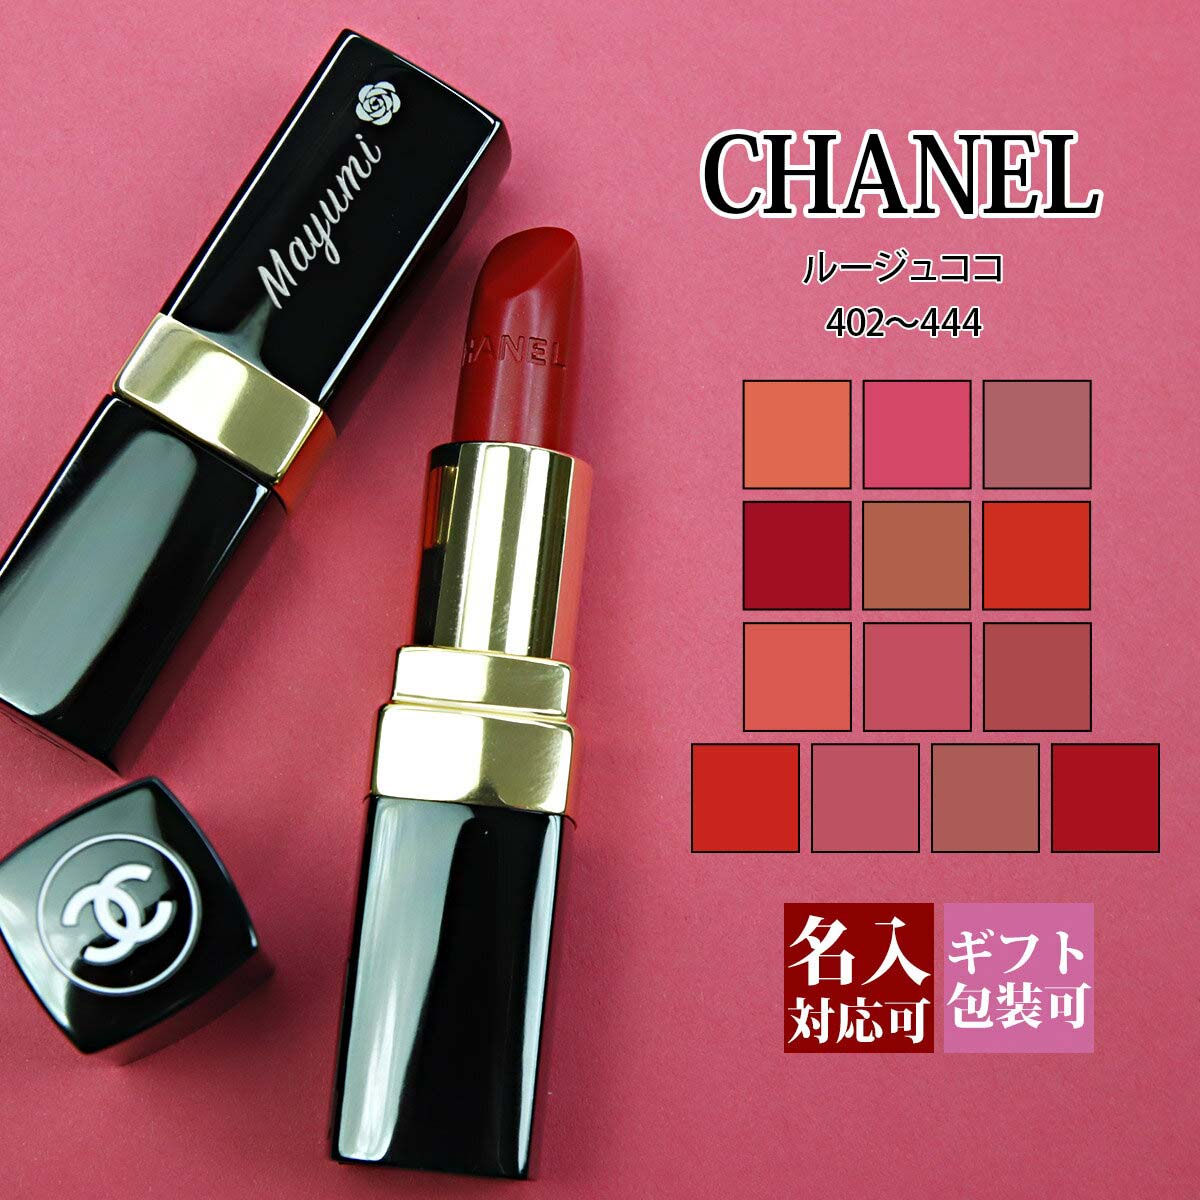 CHANEL lipstick ROUGE COCO CHANEL 2020